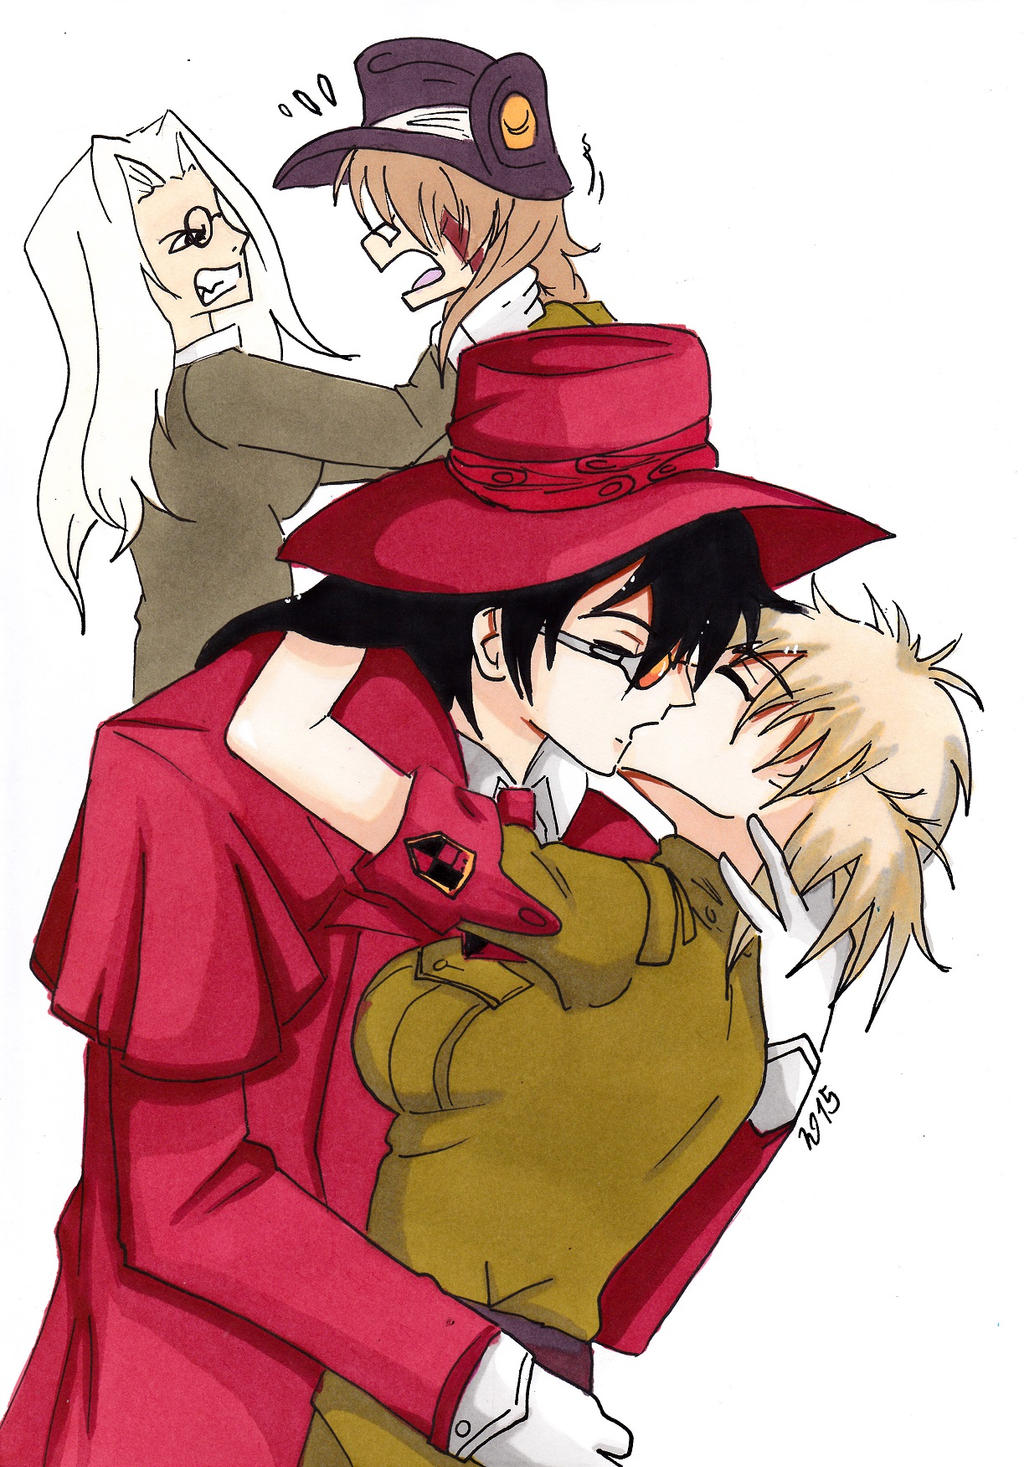 hellsing alucard and seras relationship questions